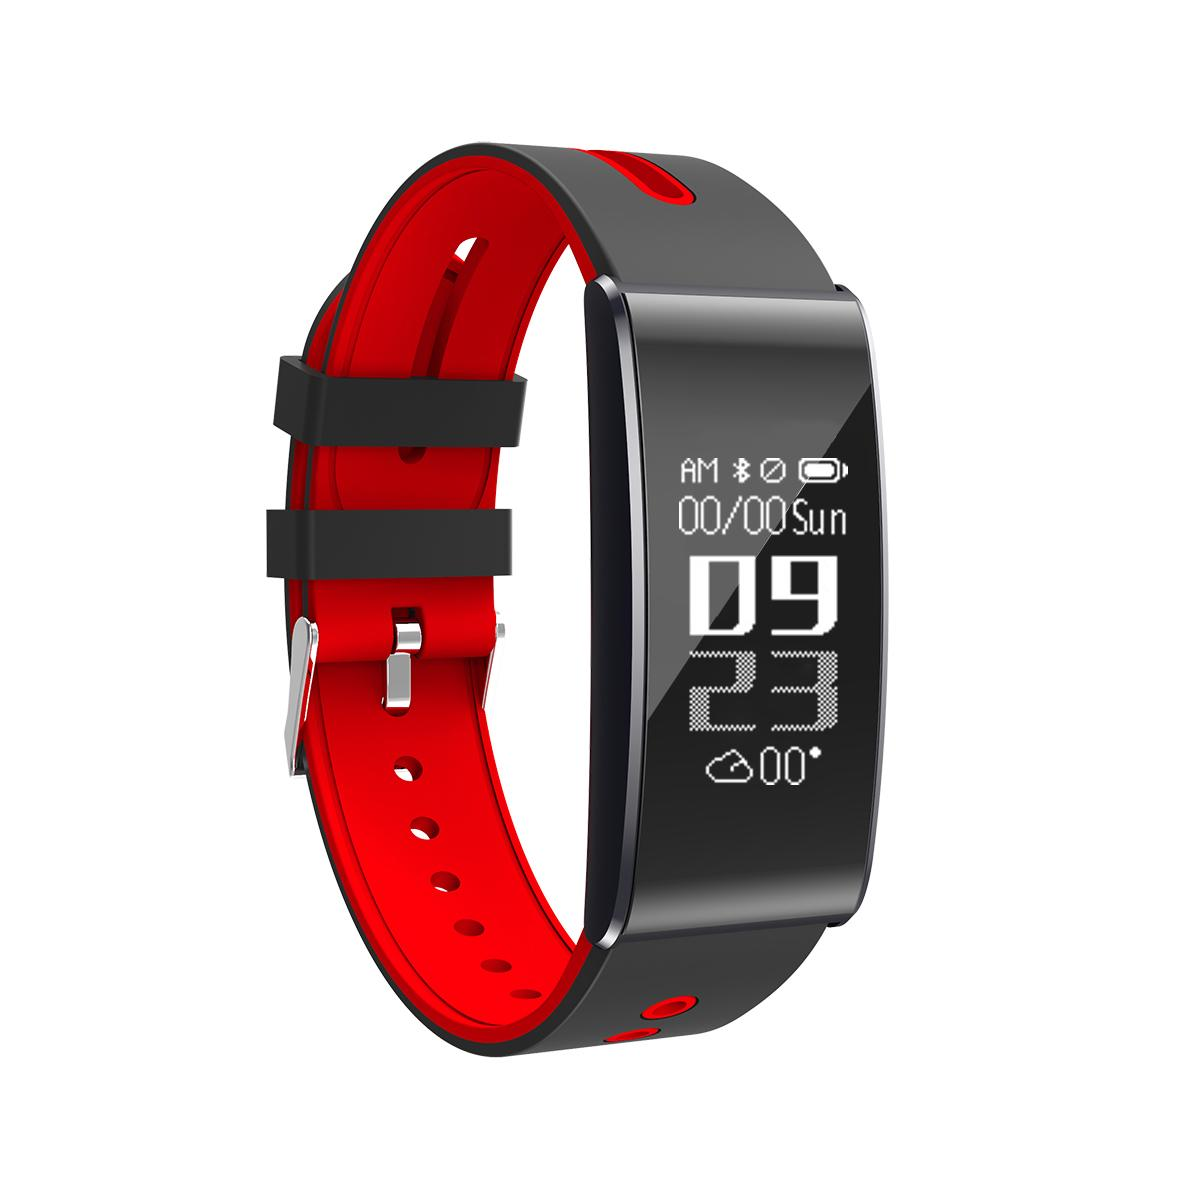 A11 Smartband Bluetooth IP67 Wasserdichter Pulsmesser Smart Armband Fitness Tracker für Ios Android-Telefon pk fitbits AUF LAGER!